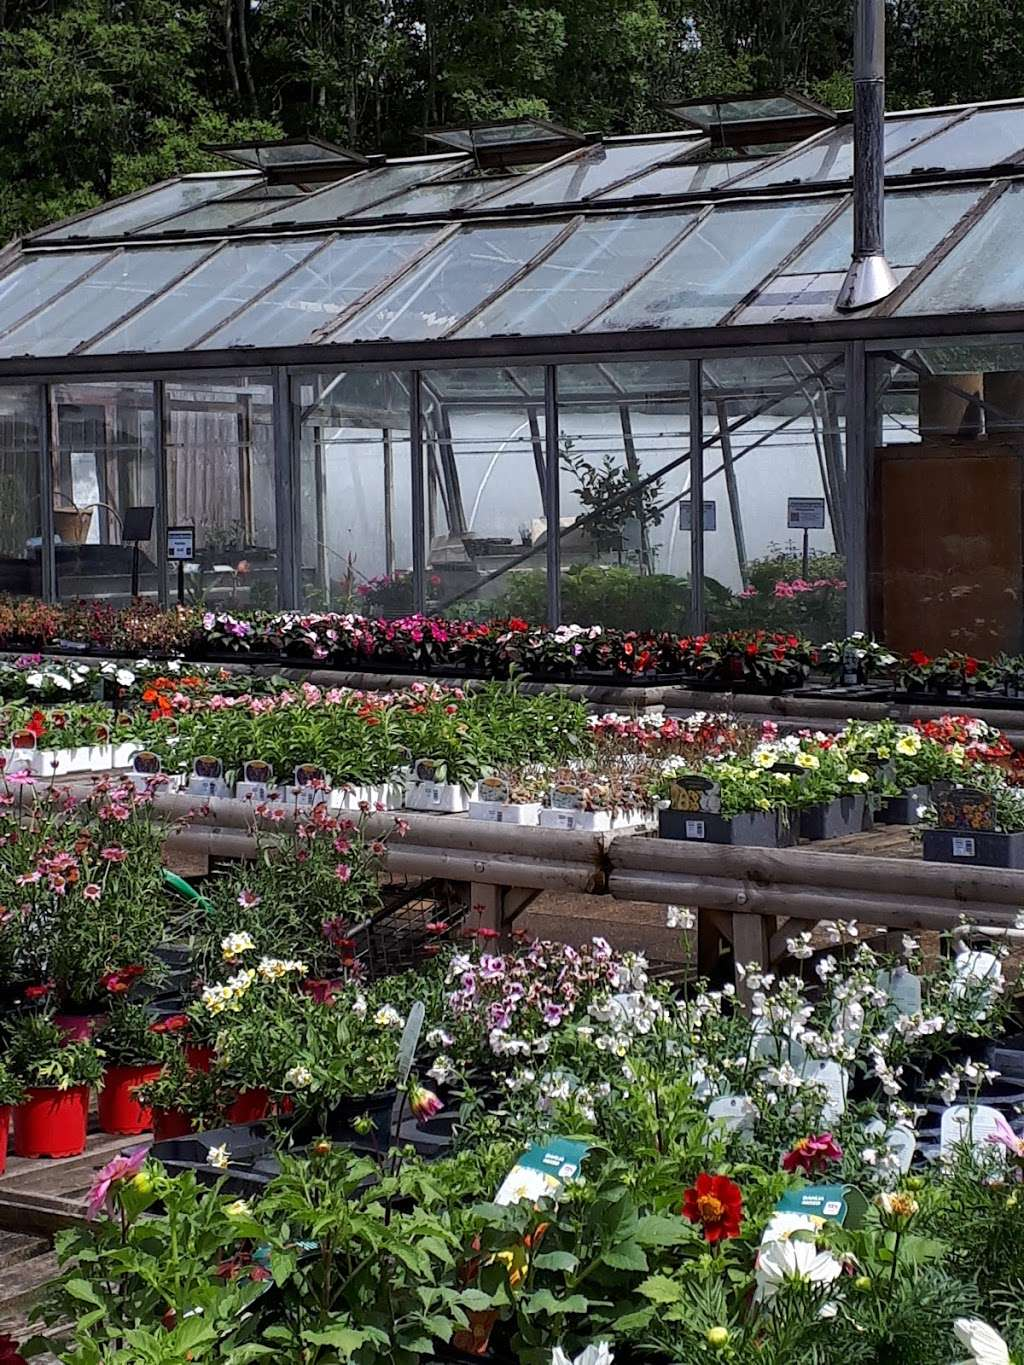 Buckland Nurseries Garden Centre - store  | Photo 7 of 10 | Address: Reigate Rd, Reigate, Betchworth RH2 9RE, UK | Phone: 01737 242990